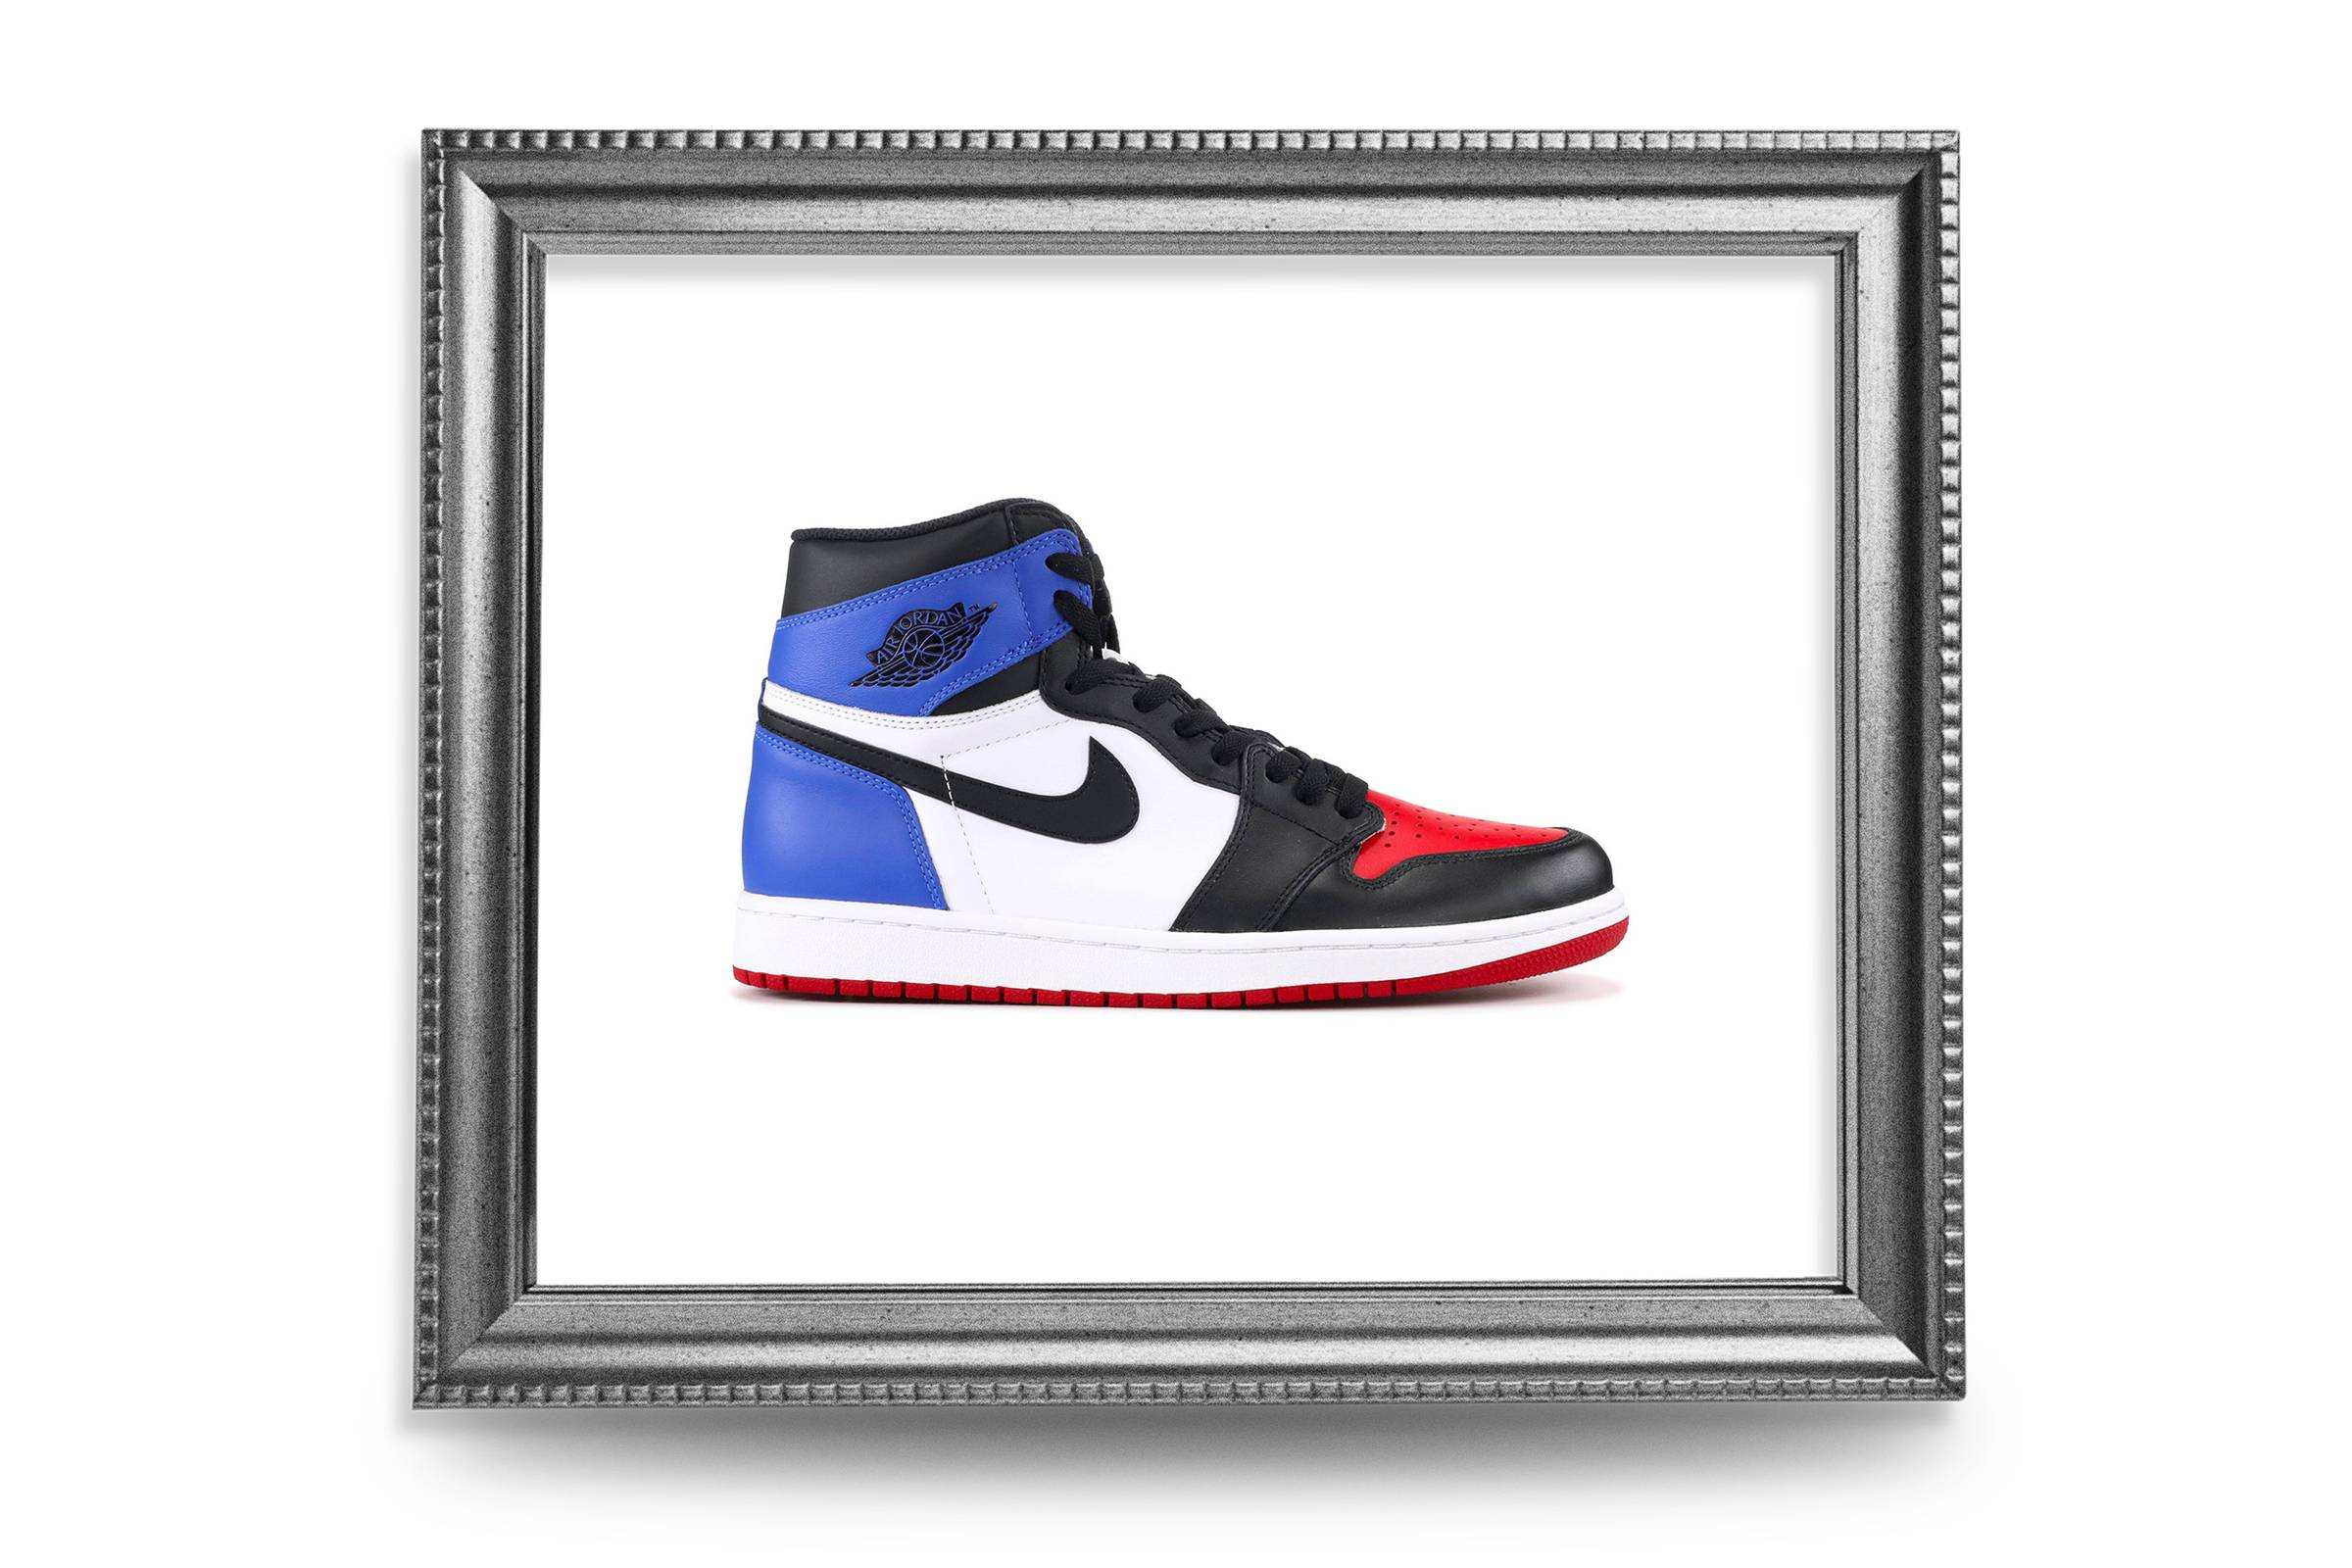 The 10 Rarest Sneakers On Grailed: Week of April 12, 2020